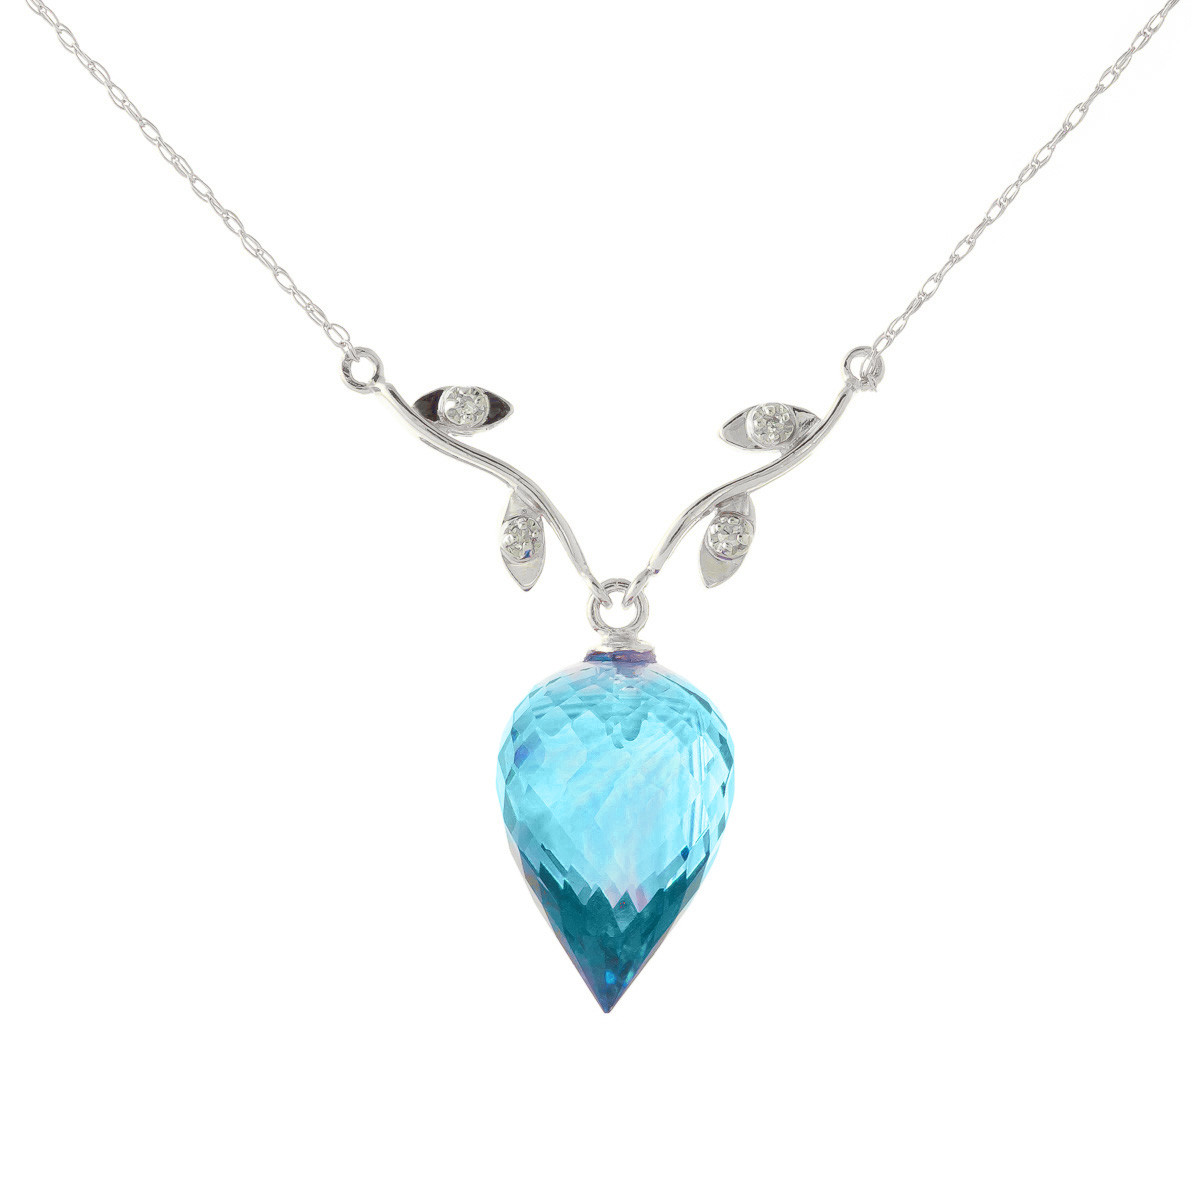 Pointed Briolette Cut Blue Topaz Pendant Necklace 11.27 ctw in 9ct White Gold